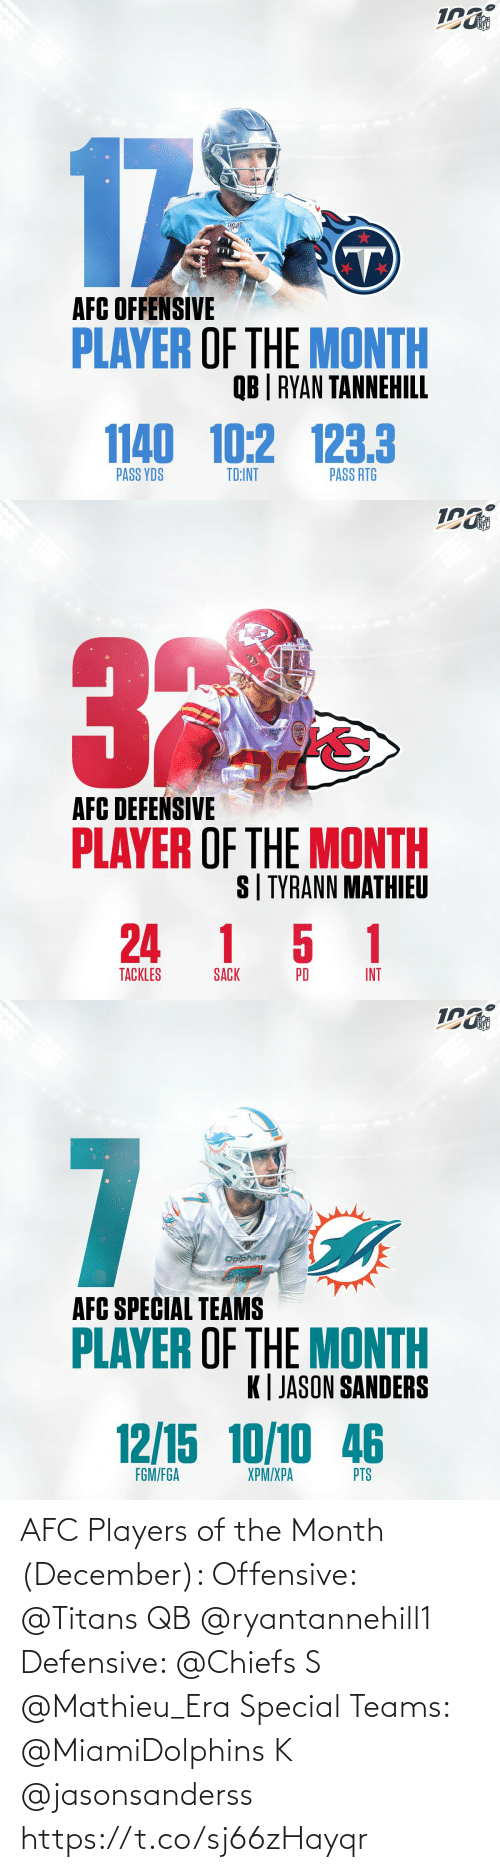 players: NFL  17  AFC OFFENSIVE  PLAYER OF THE MONTH  QB | RYAN TANNEHILL  1140 10:2 123.3  PASS RTG  PASS YDS  TD:INT   NFL  AFC DEFEŃSIVE  PLAYER OF THE MONTH  S| TYRANN MATHIEU  24 1 5 1  TACKLES  INT  PD  SACK   NFL  7  Dolphins  AFC SPECIAL TEAMS  PLAYER OF THE MONTH  K| JASON SANDERS  12/15 10/10 46  FGM/FGA  XPM/XPA  PTS AFC Players of the Month (December):   Offensive: @Titans QB @ryantannehill1    Defensive: @Chiefs S @Mathieu_Era   Special Teams: @MiamiDolphins K @jasonsanderss https://t.co/sj66zHayqr